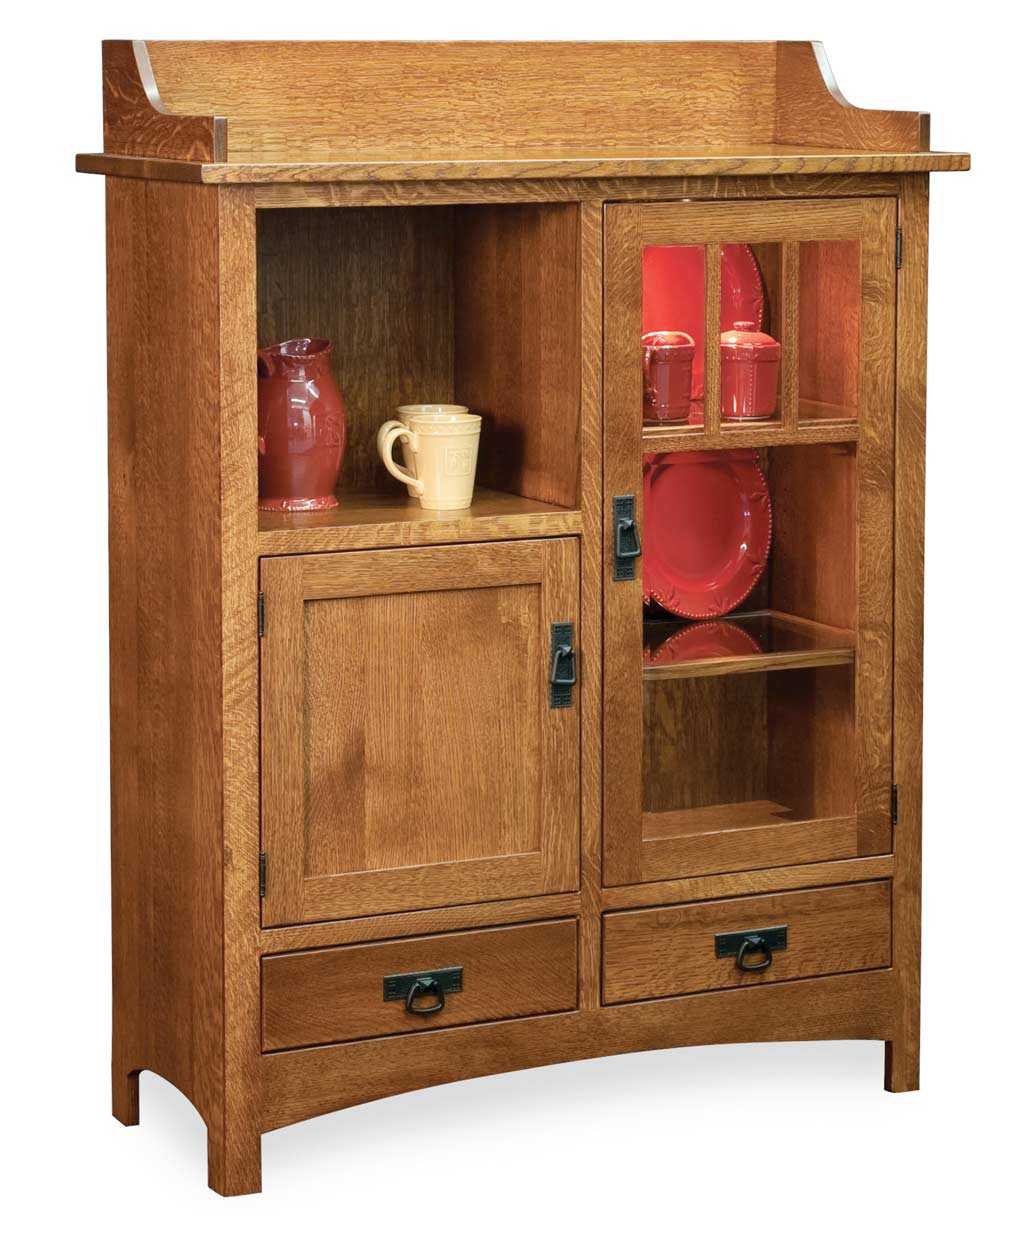 Amish Style Kitchen Cabinets: Amish Direct Furniture